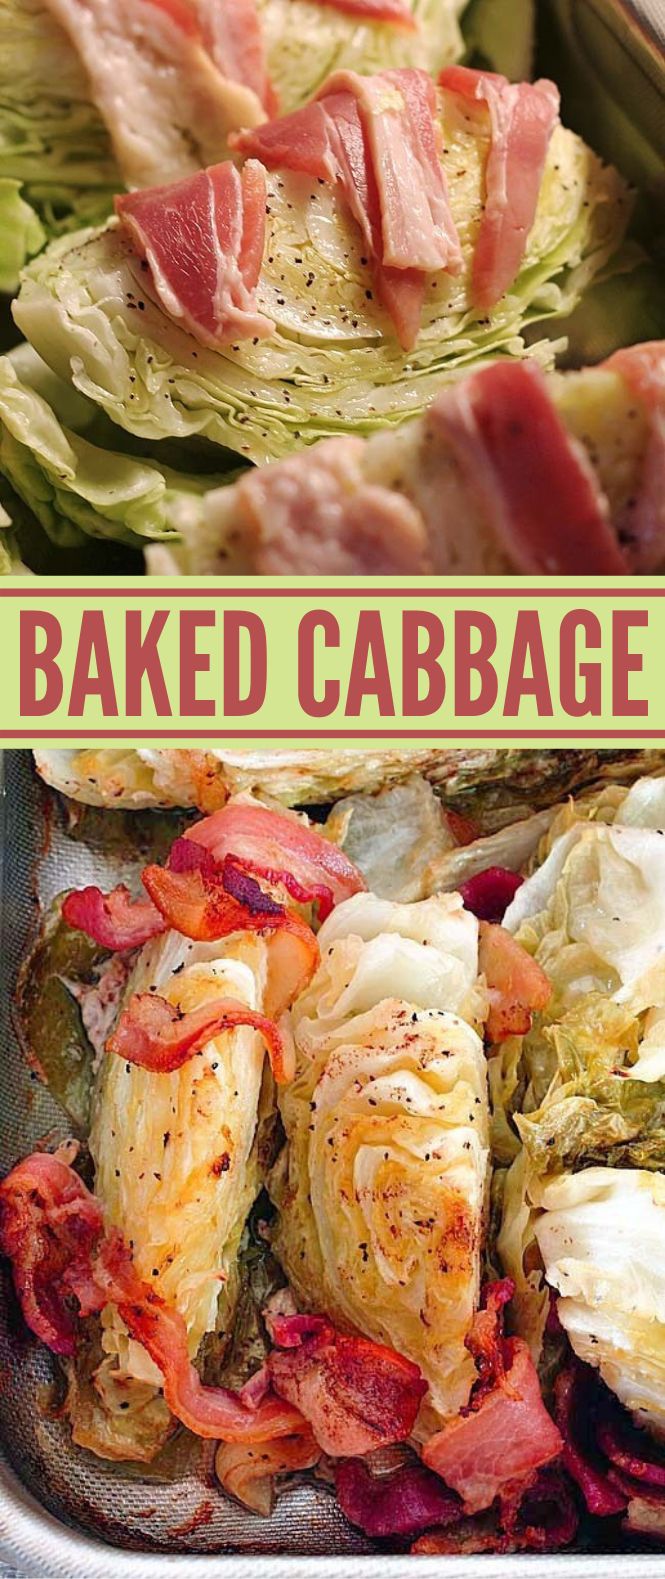 BAKED CABBAGE #vegetarian #healthy